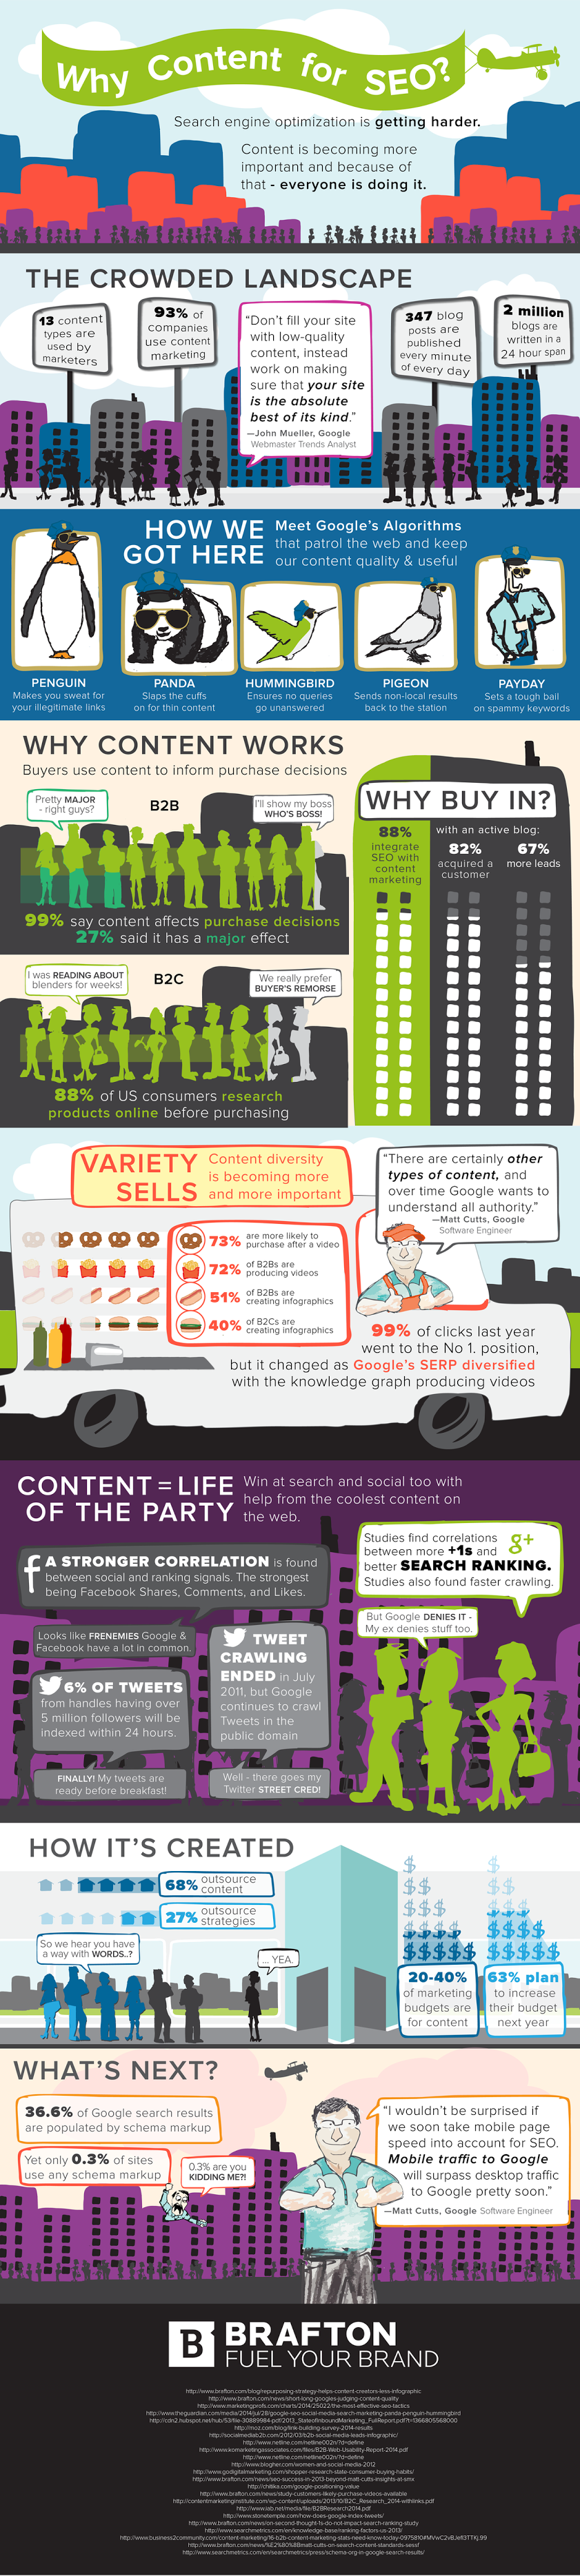 Why Content Marketing Is the Key to Success for Small Businesses, and why it is imperative to getting customers today